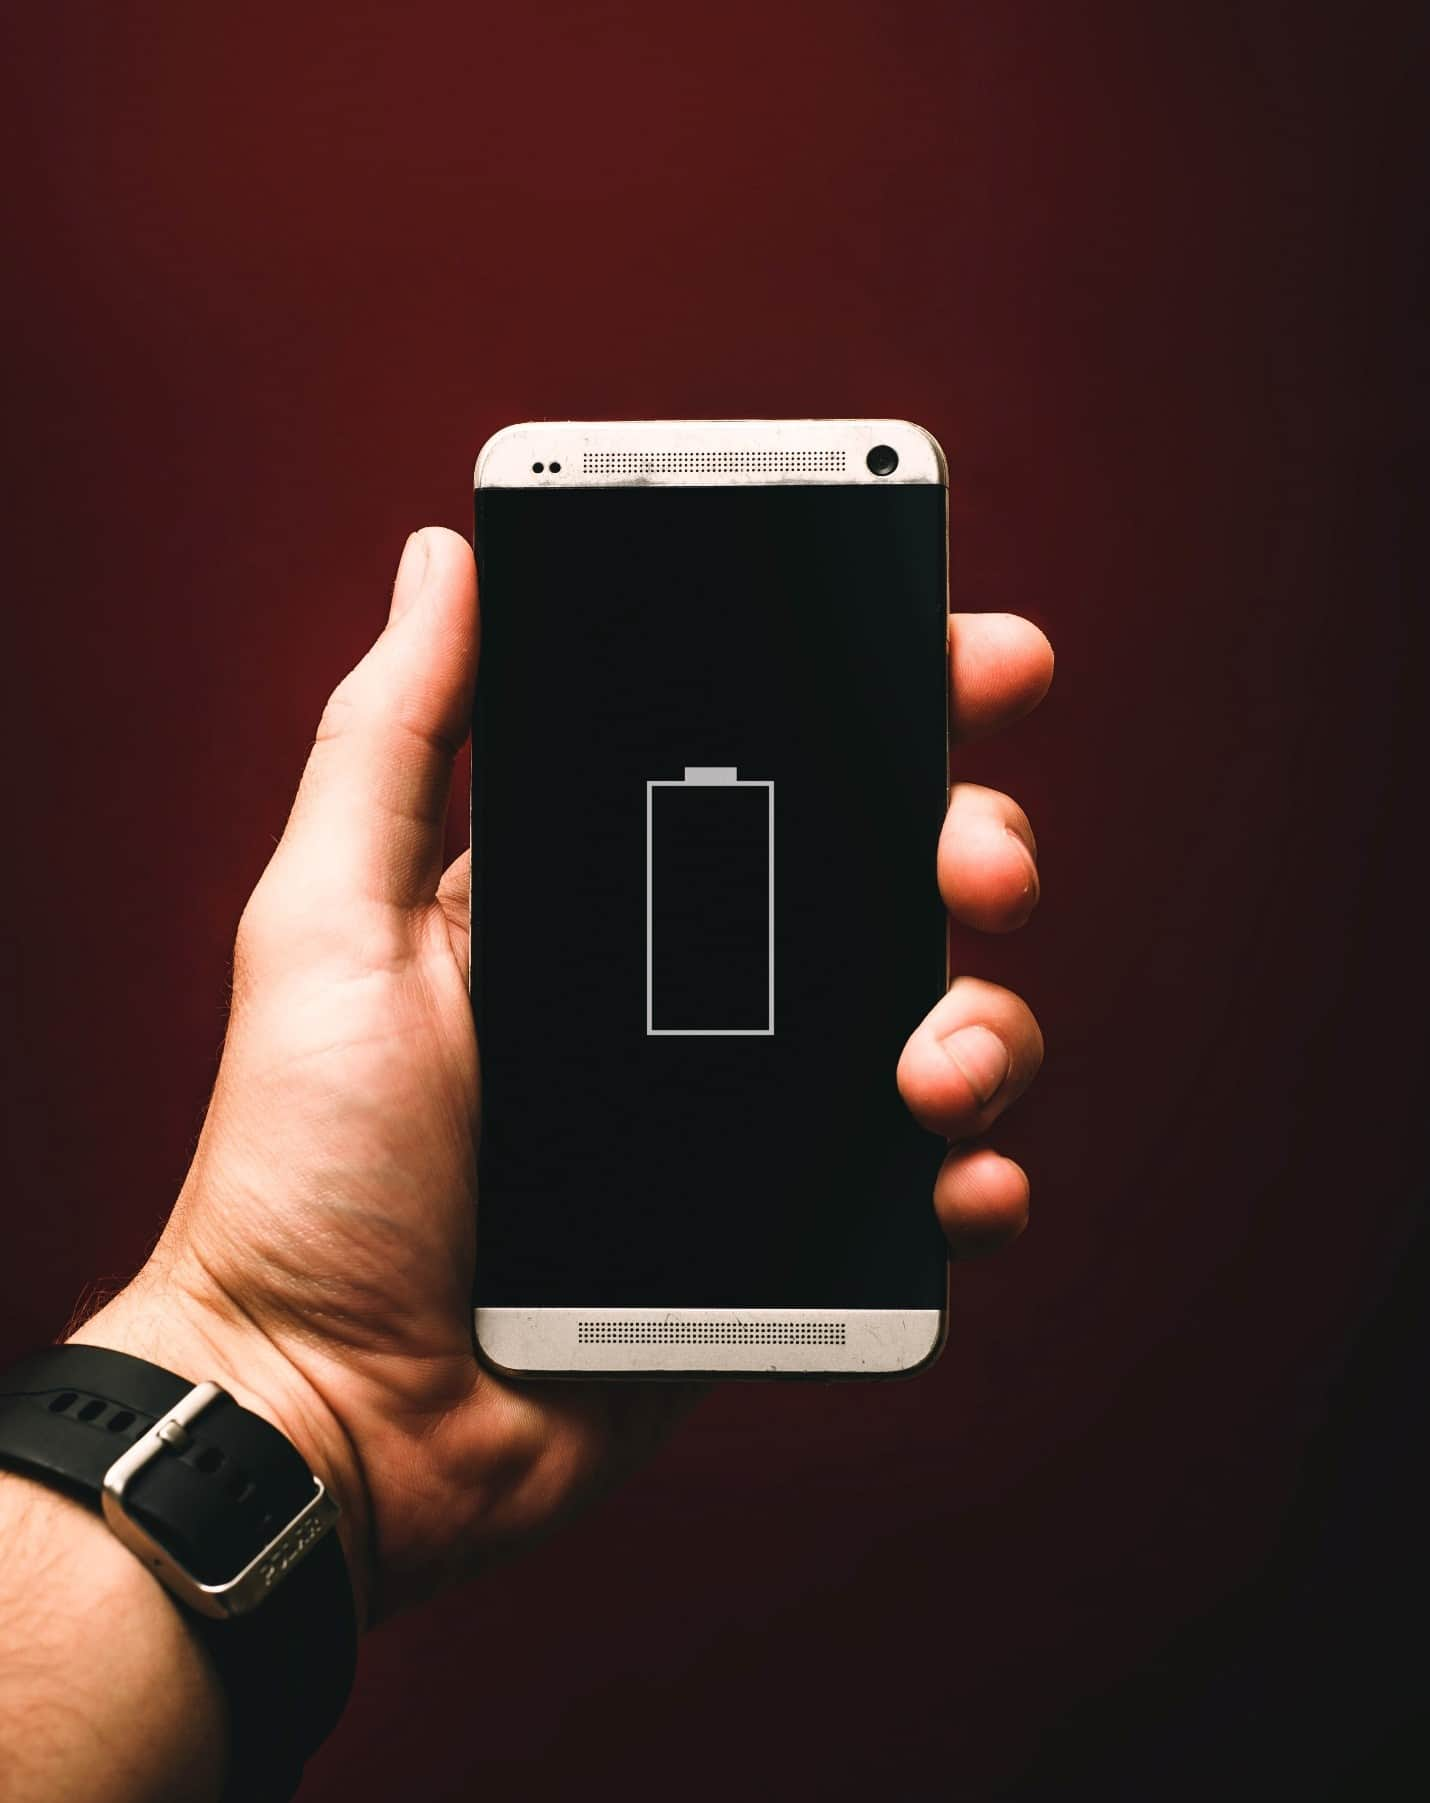 content/sv-se/images/repository/isc/2020/9910/prolong-your-smartphone-battery-lifespan-1.jpg